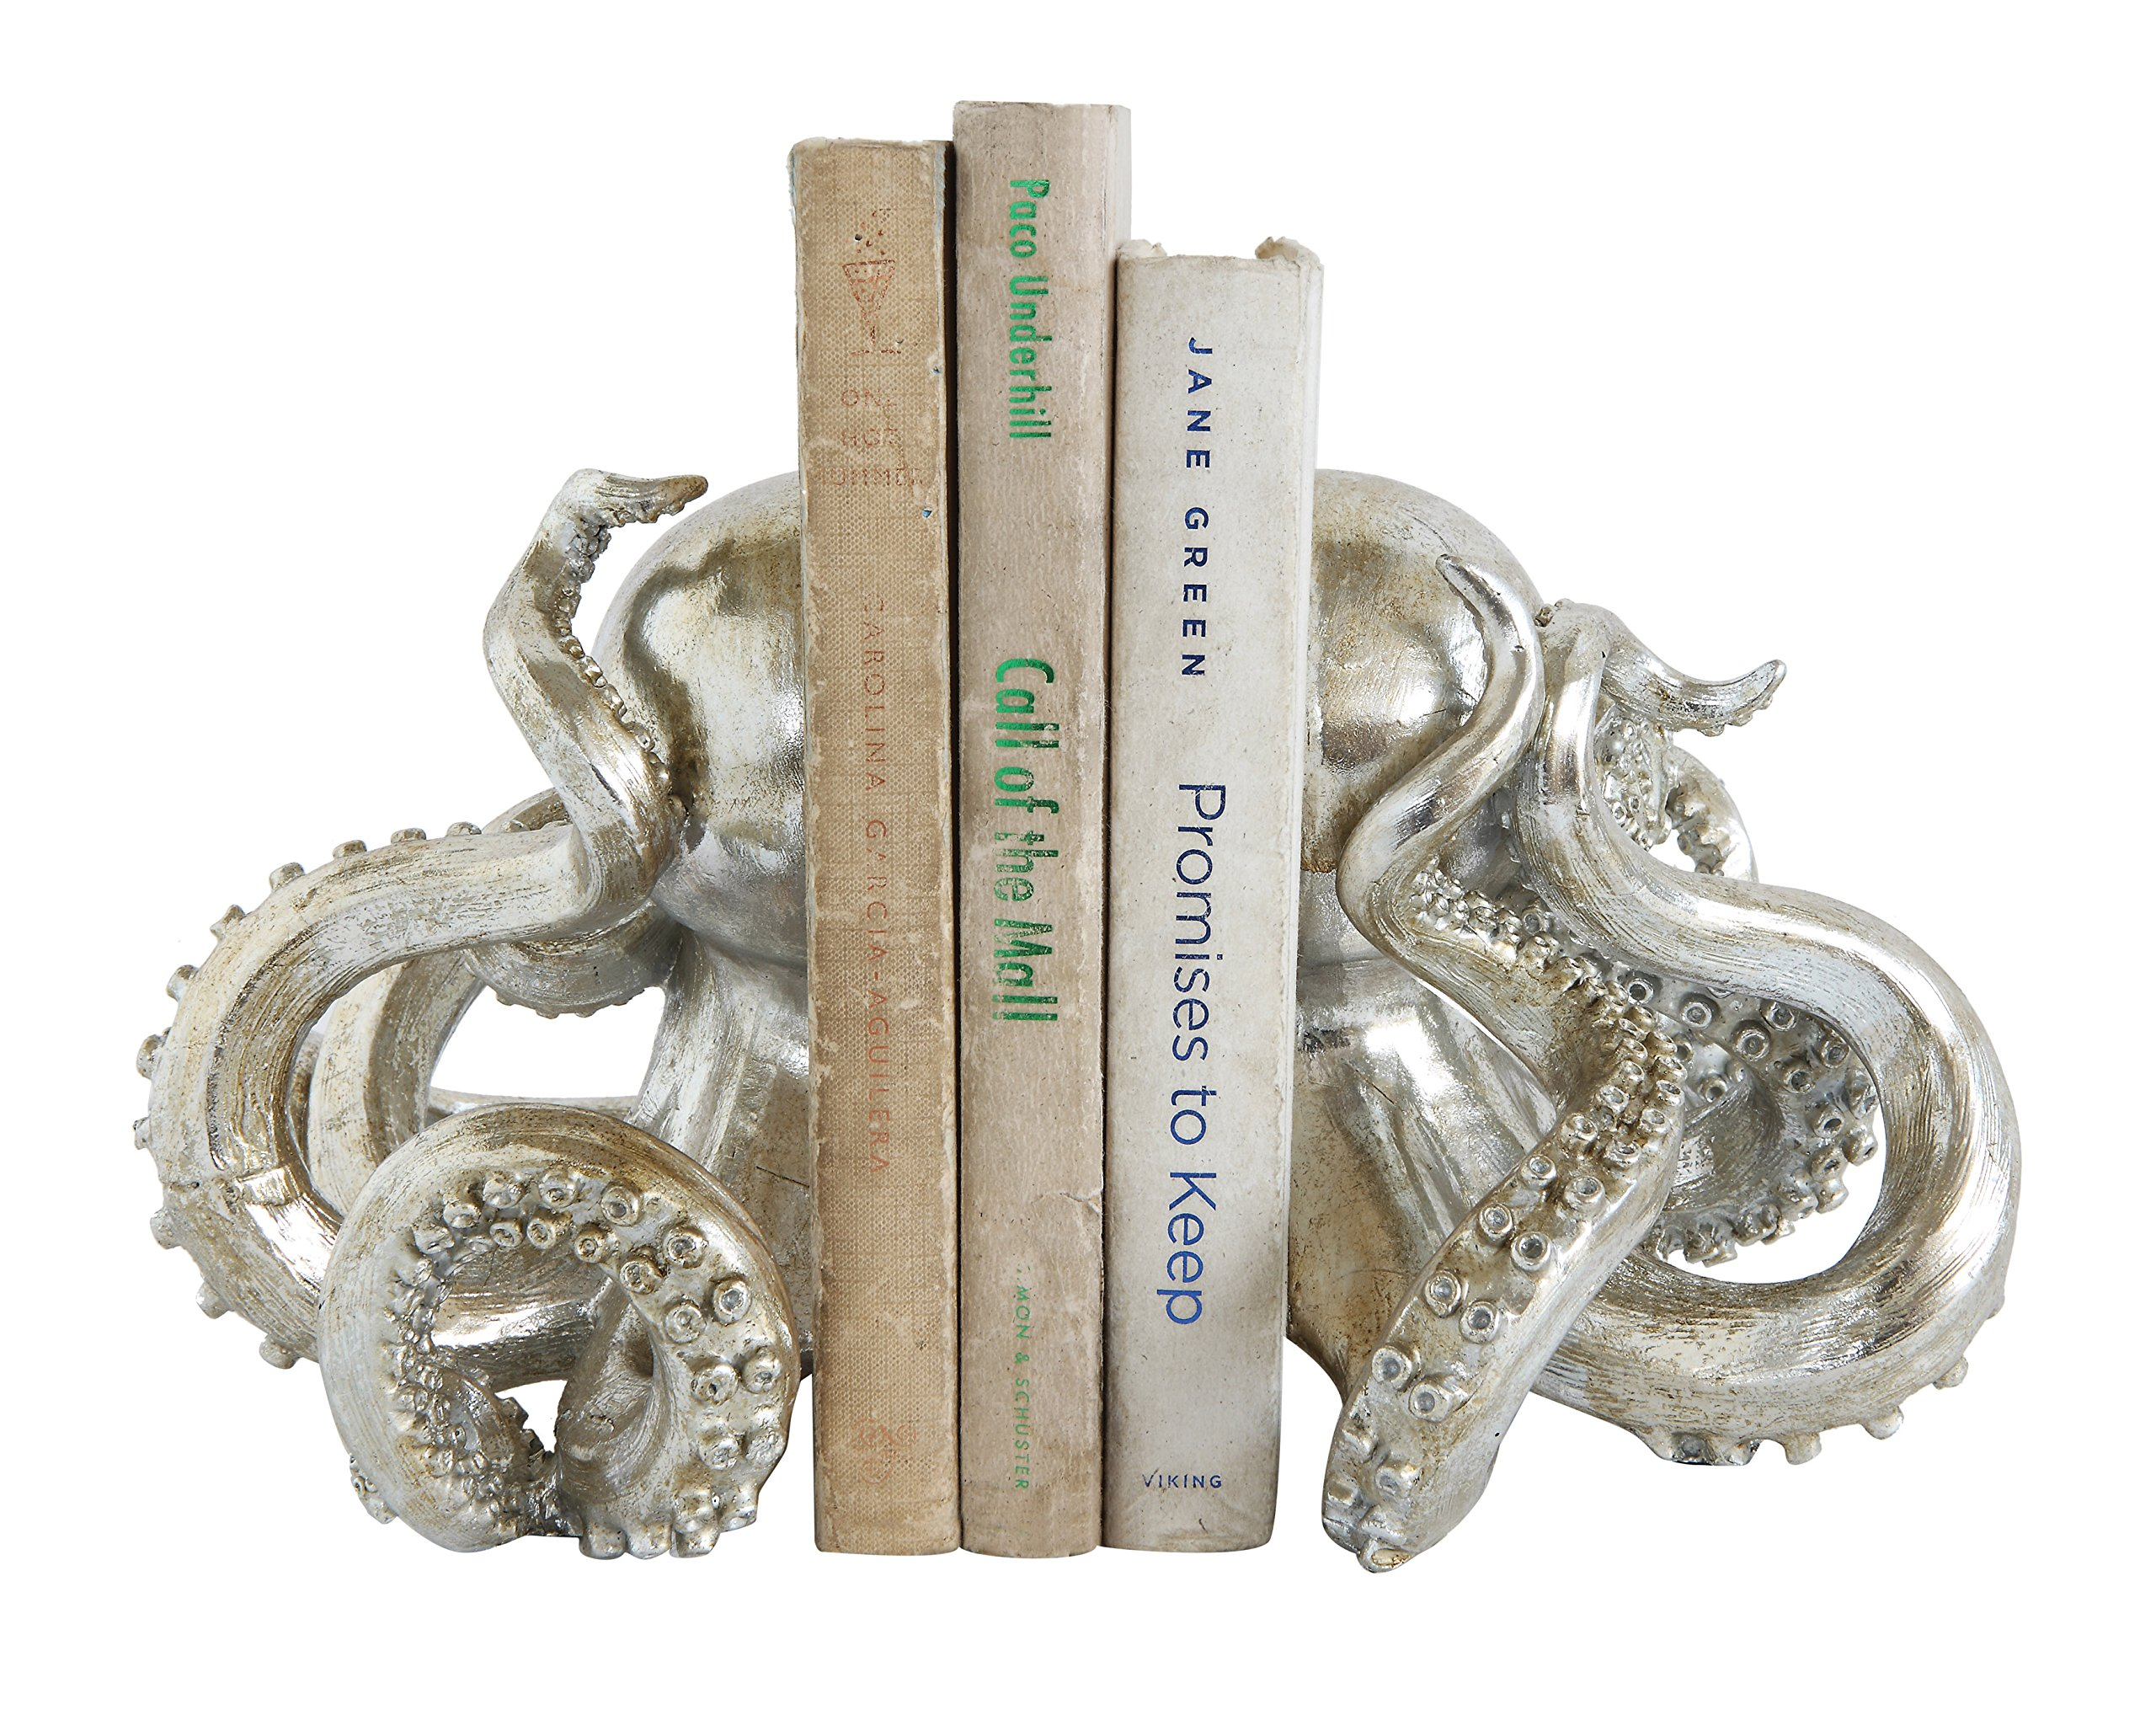 Creative Co-op Octopus Shaped Silver Resin Bookends (Set of 2 Pieces)